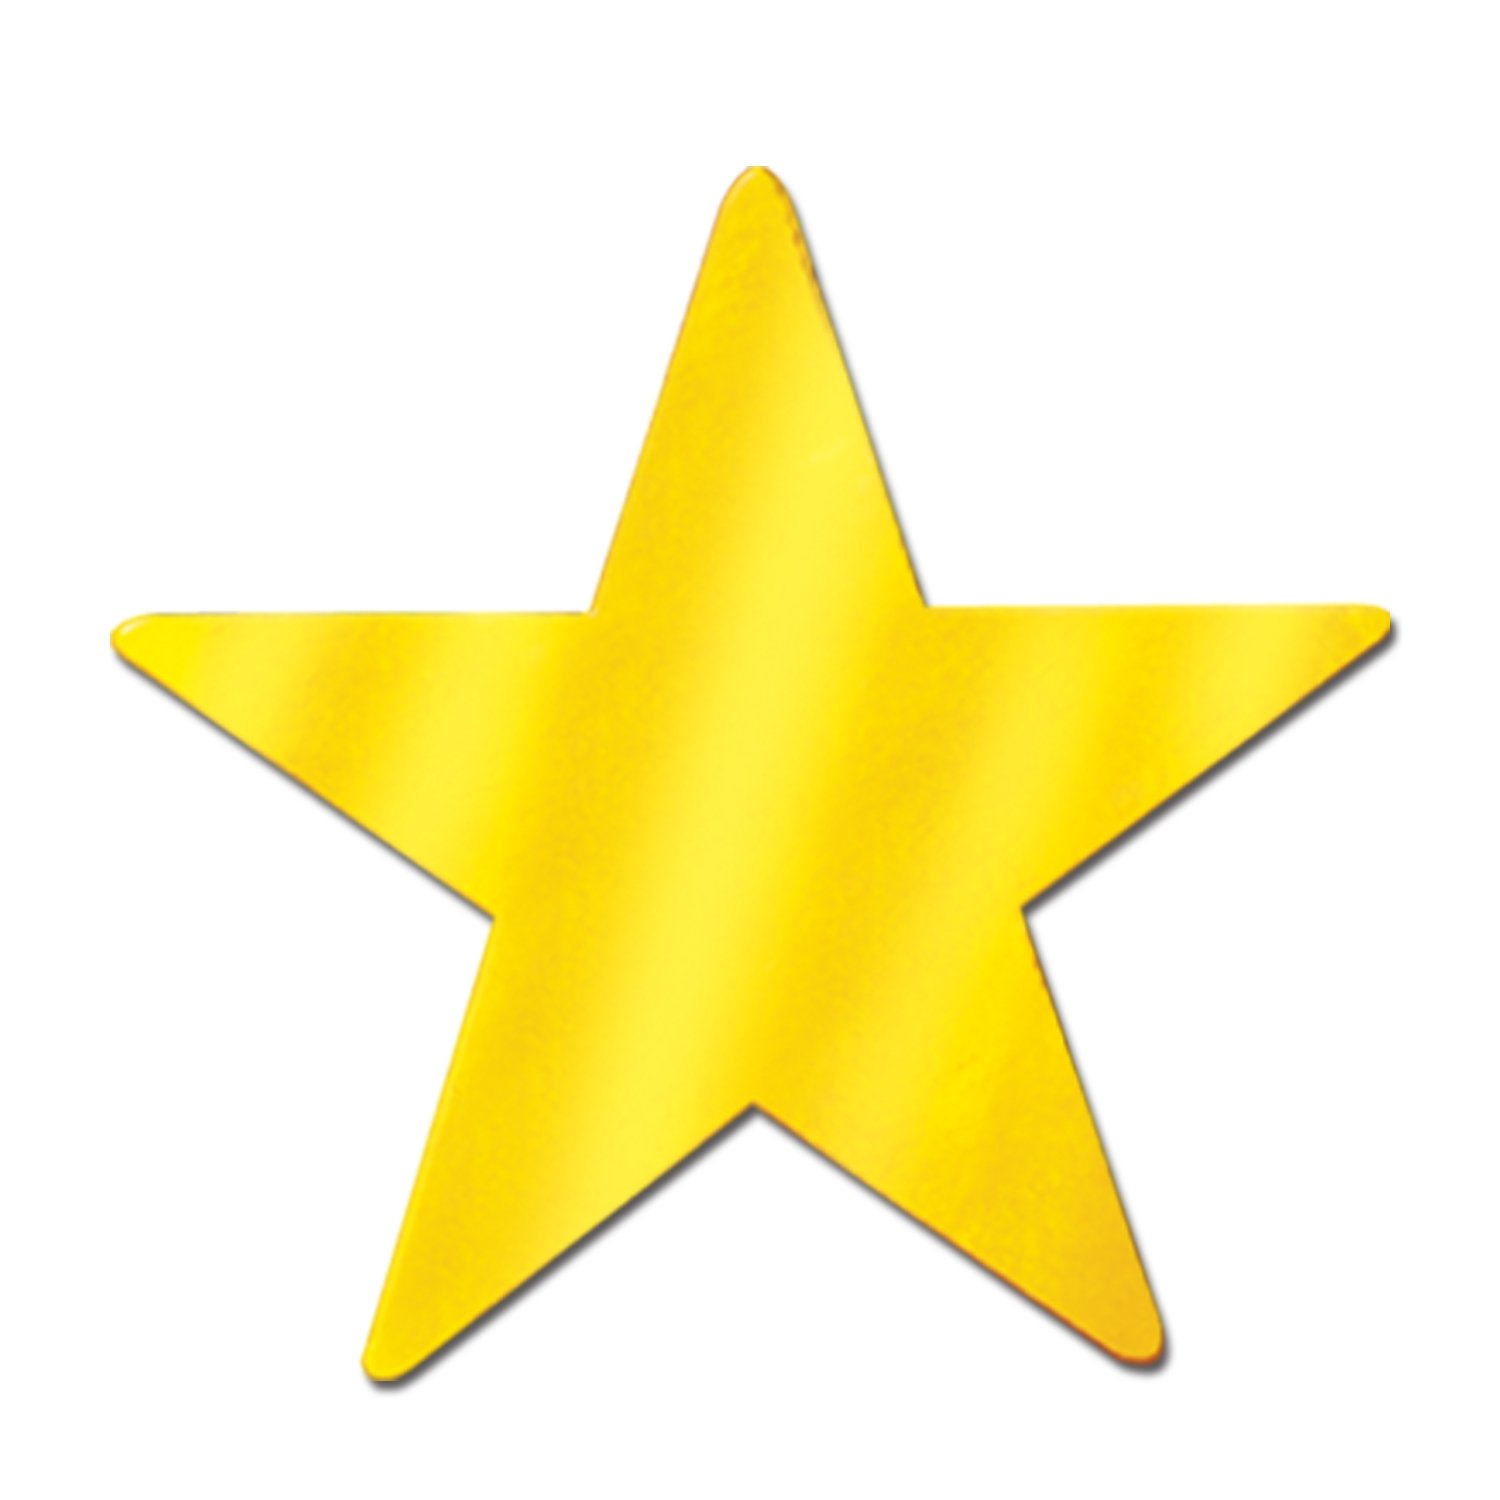 Beistle 55837-GD 72-Piece Foil Star Cutouts, 5-Inch by Beistle